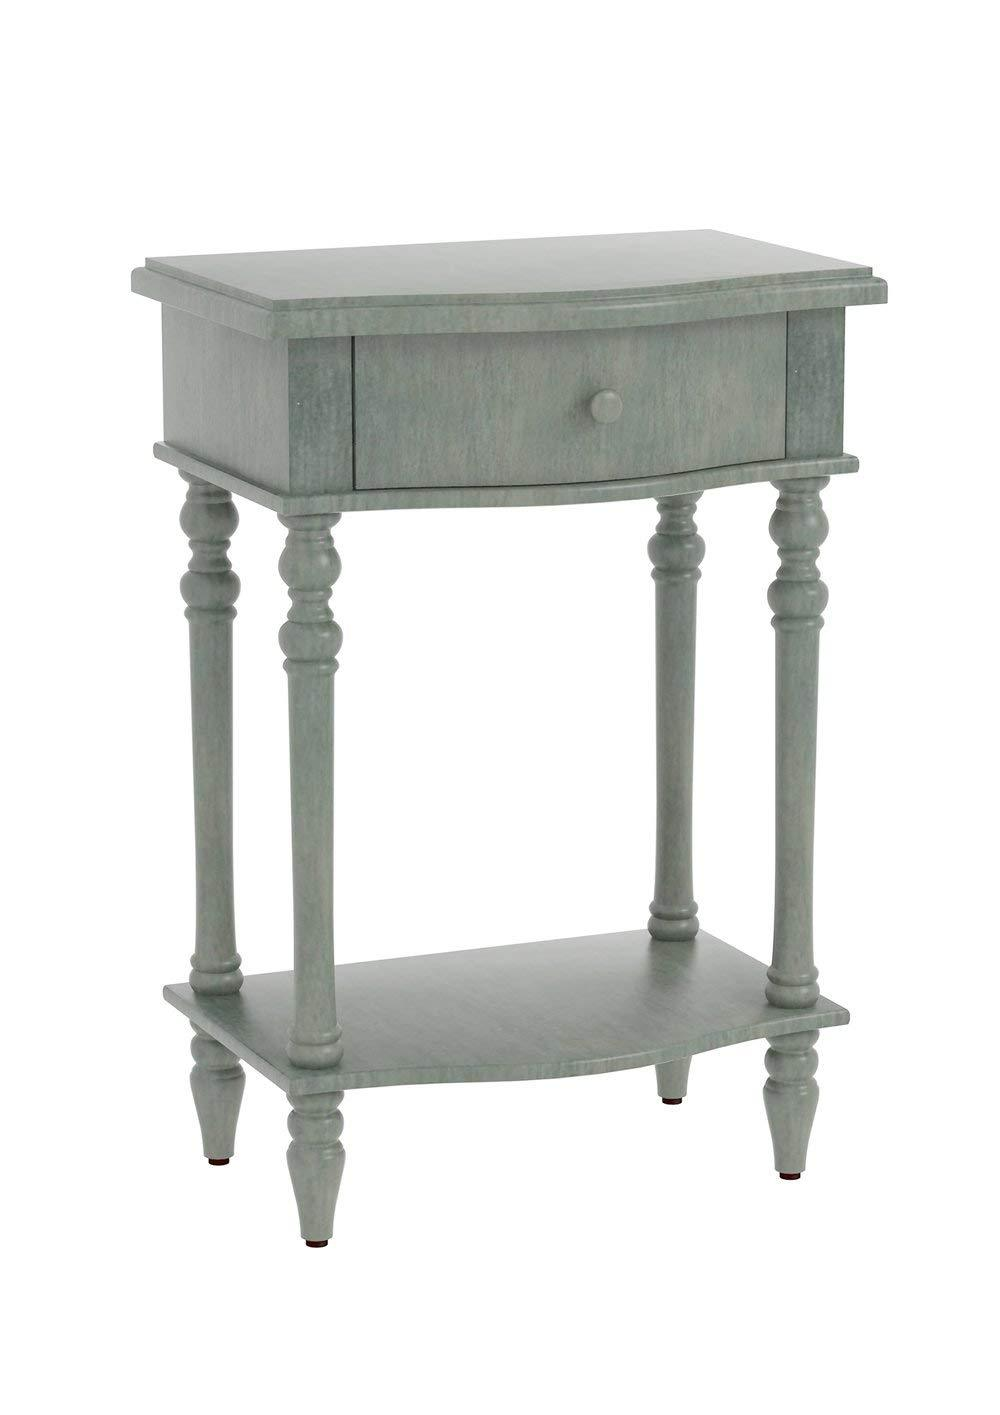 urbanest jefferson accent end table with drawer tables drawers small trestle legs coffee and matching side hobby lobby rustic wood ikea bedroom storage ideas dale tiffany hanging